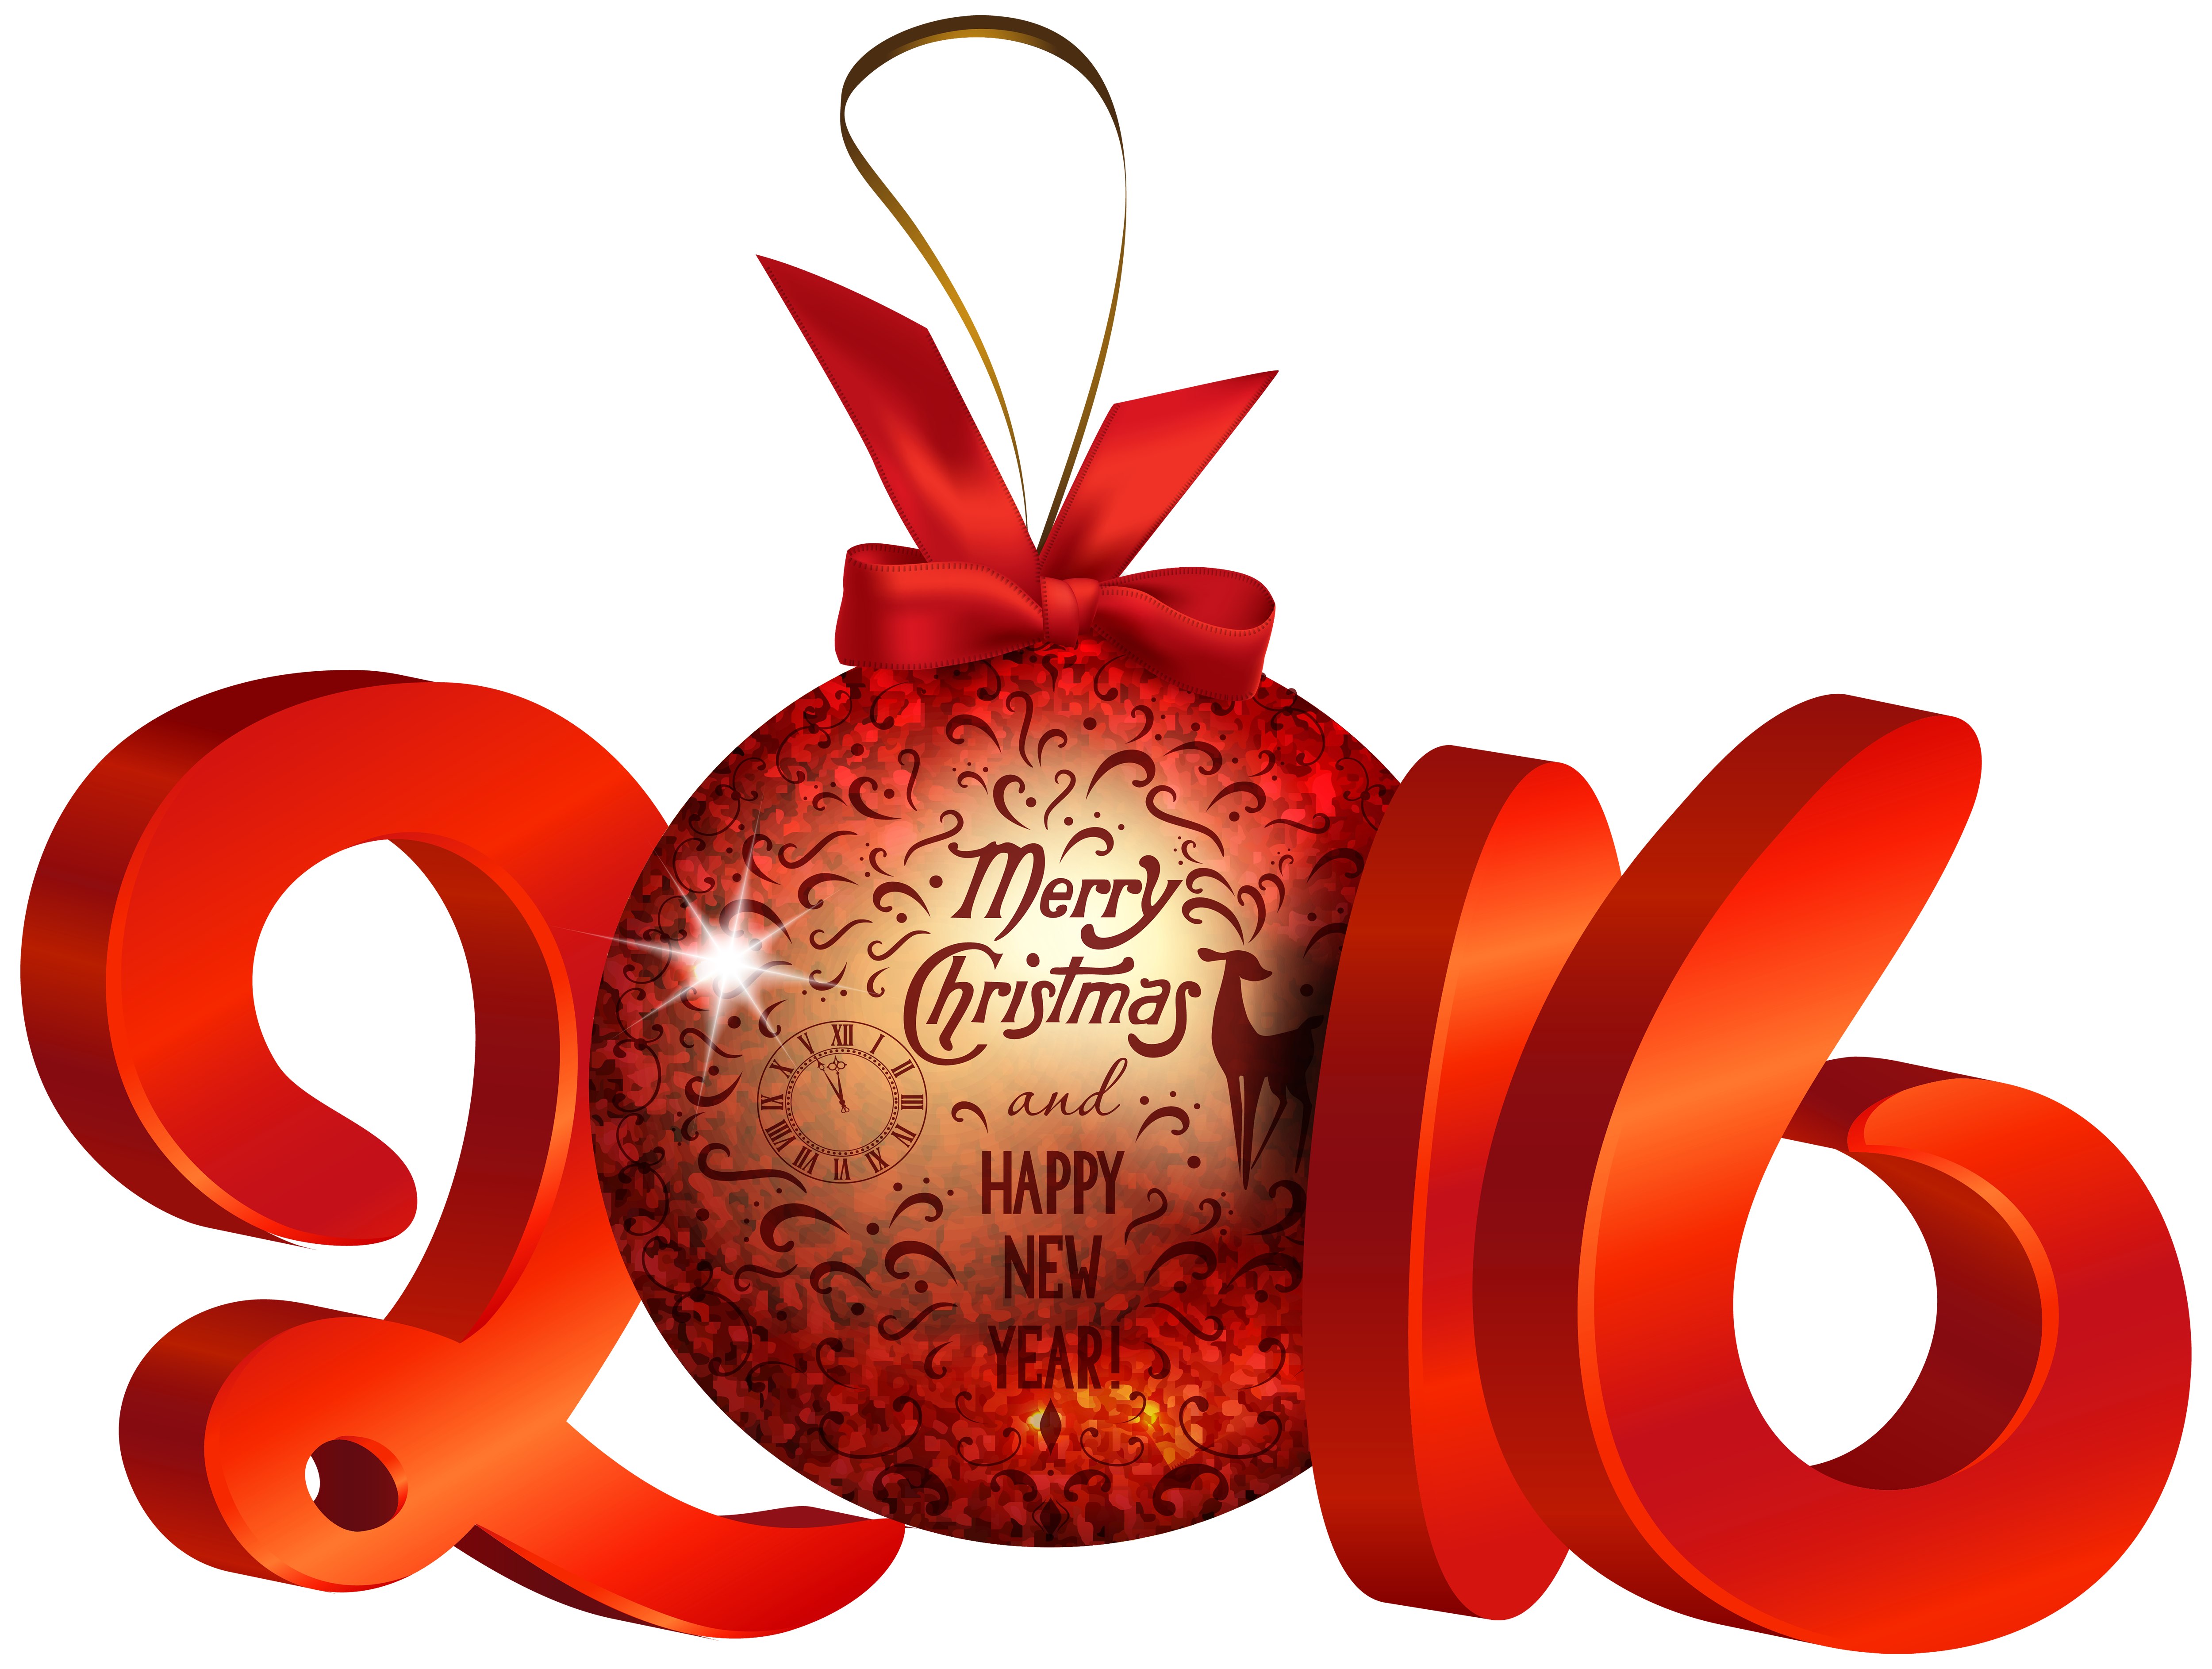 Christmas 2016 png. Red decoration clipart image